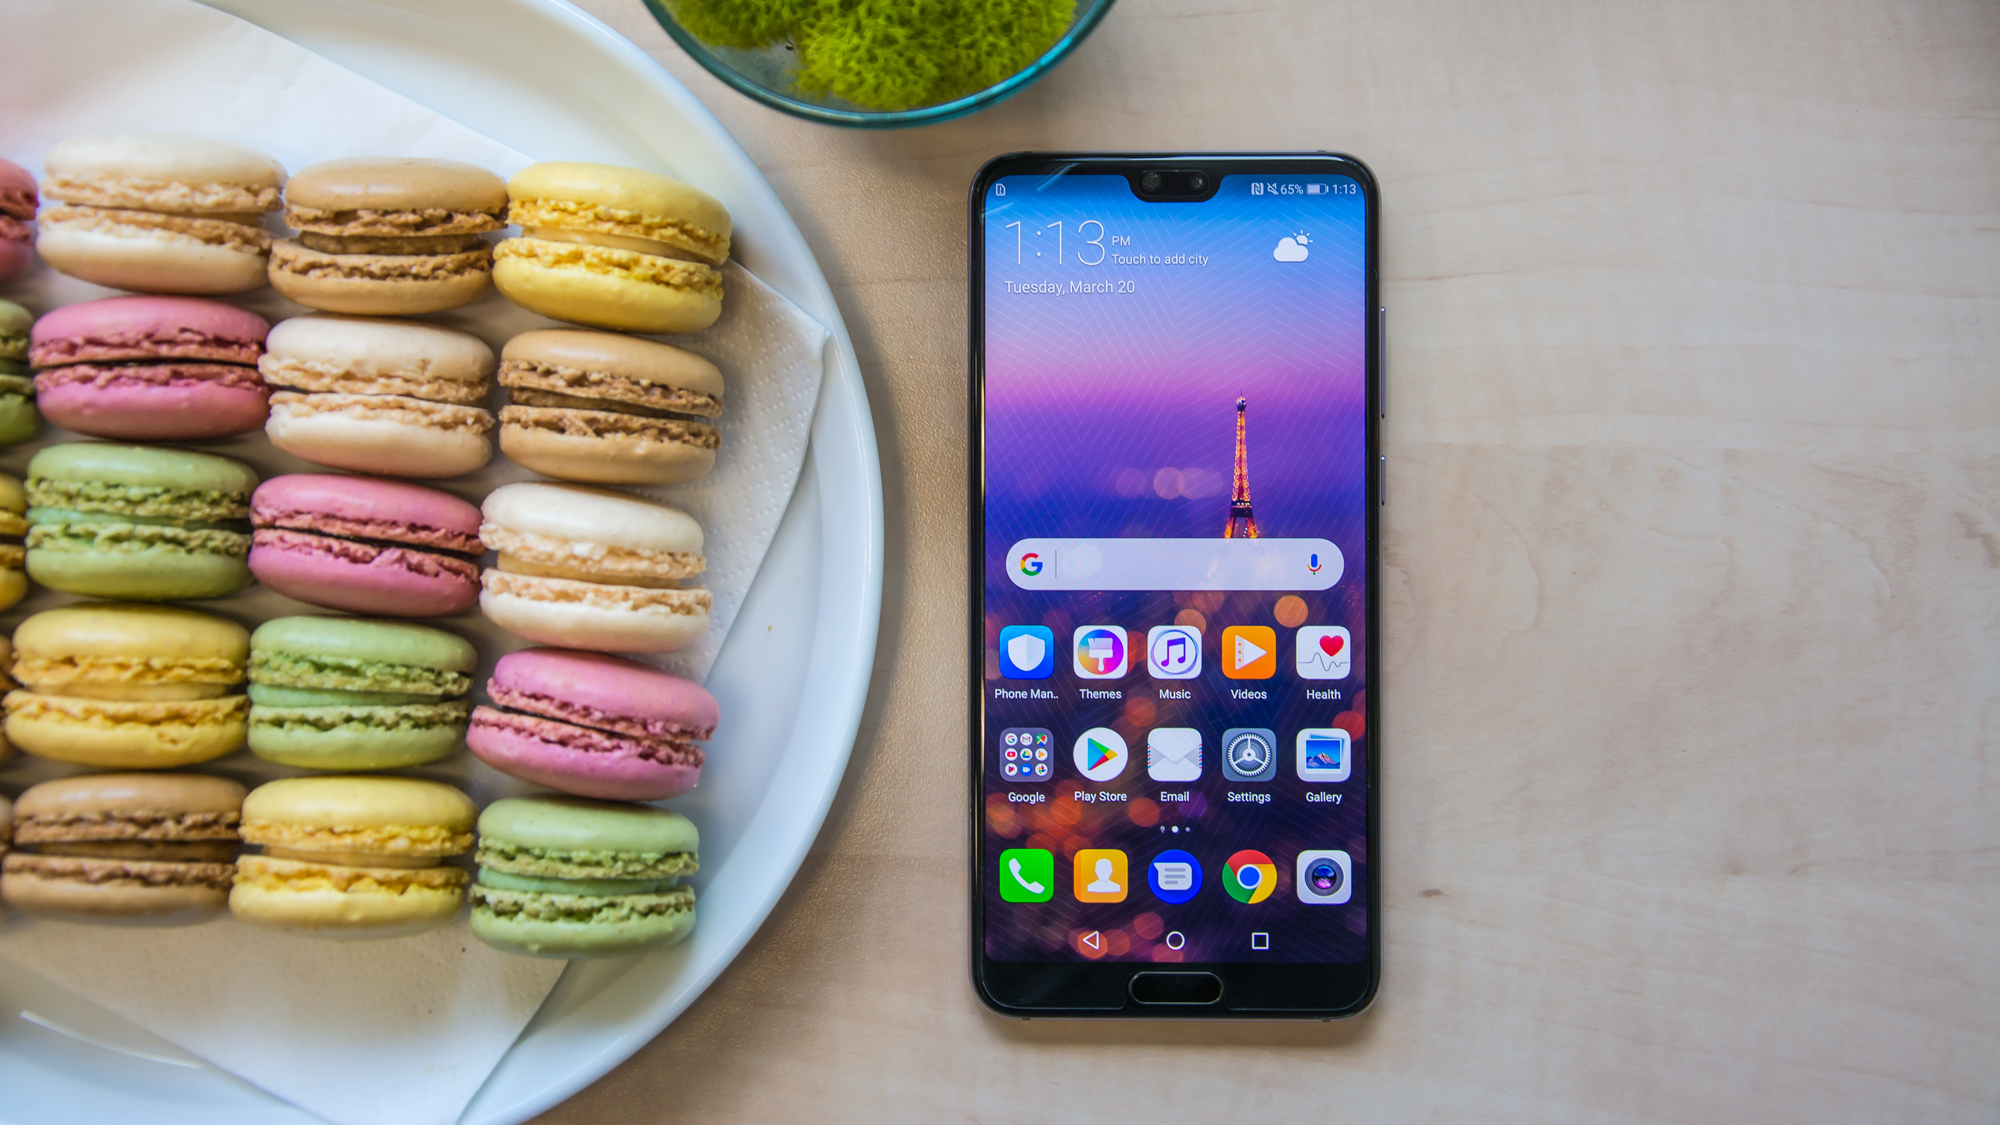 Huawei s P20 Pro is certainly one of the more interesting smartphones to launch in the last few years Huawei believes that adding another camera to the mix